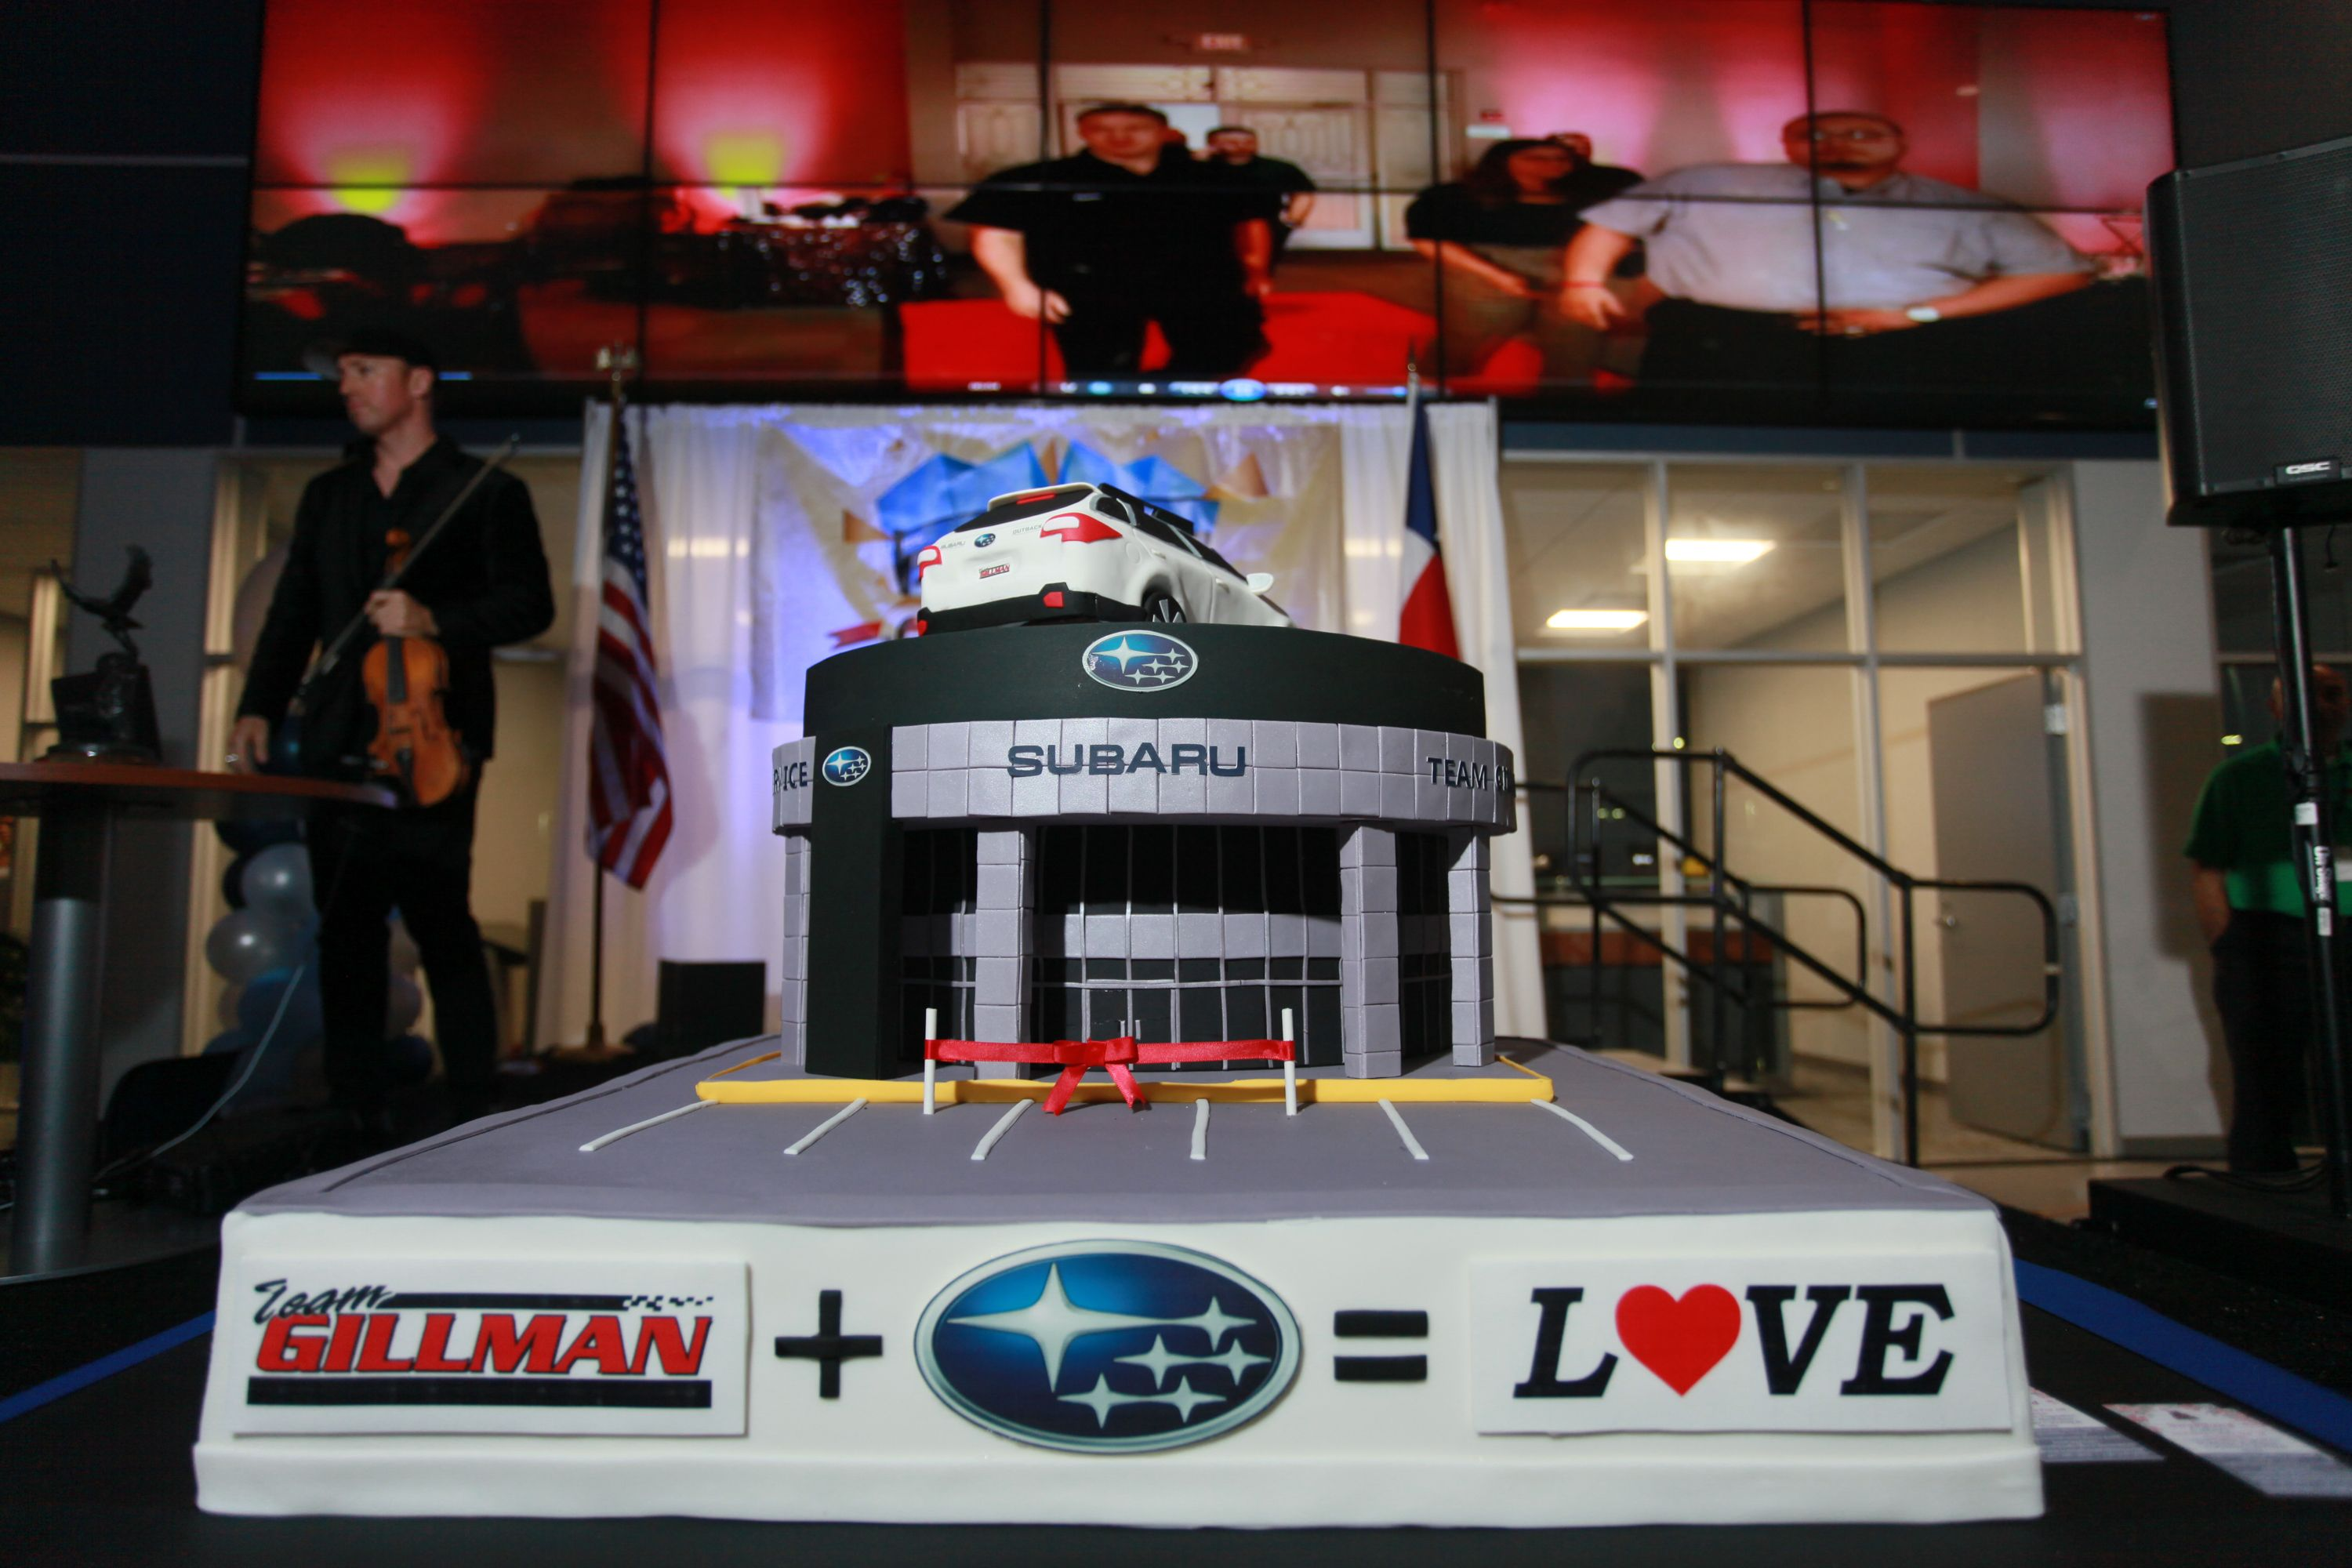 Gillman Subaru North >> Gillman Subaru North Takes The Cake Again We Re The 1